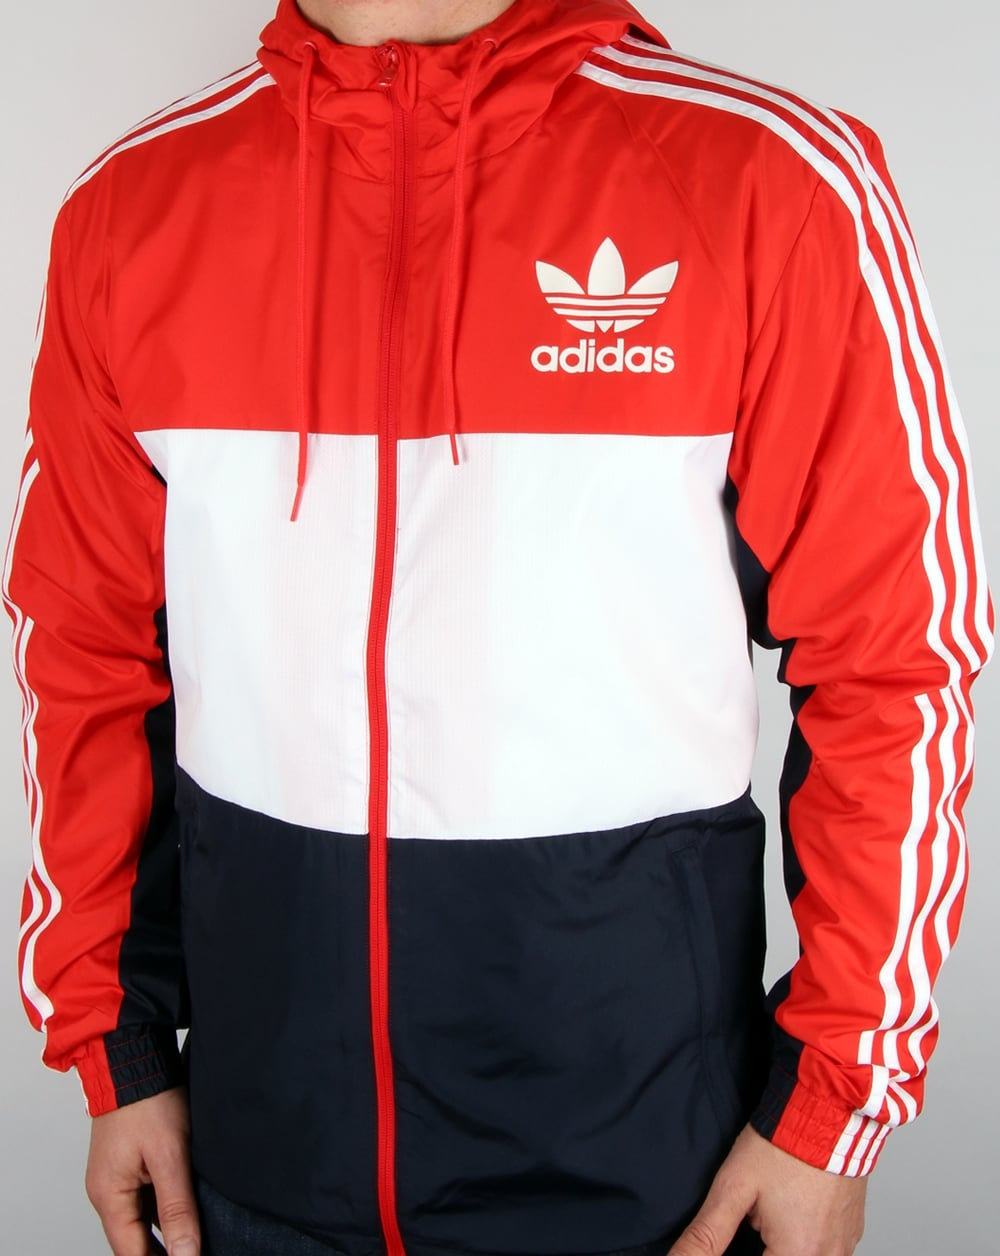 Adidas Originals California Windbreaker Red/white/navy, Men's, Jacket